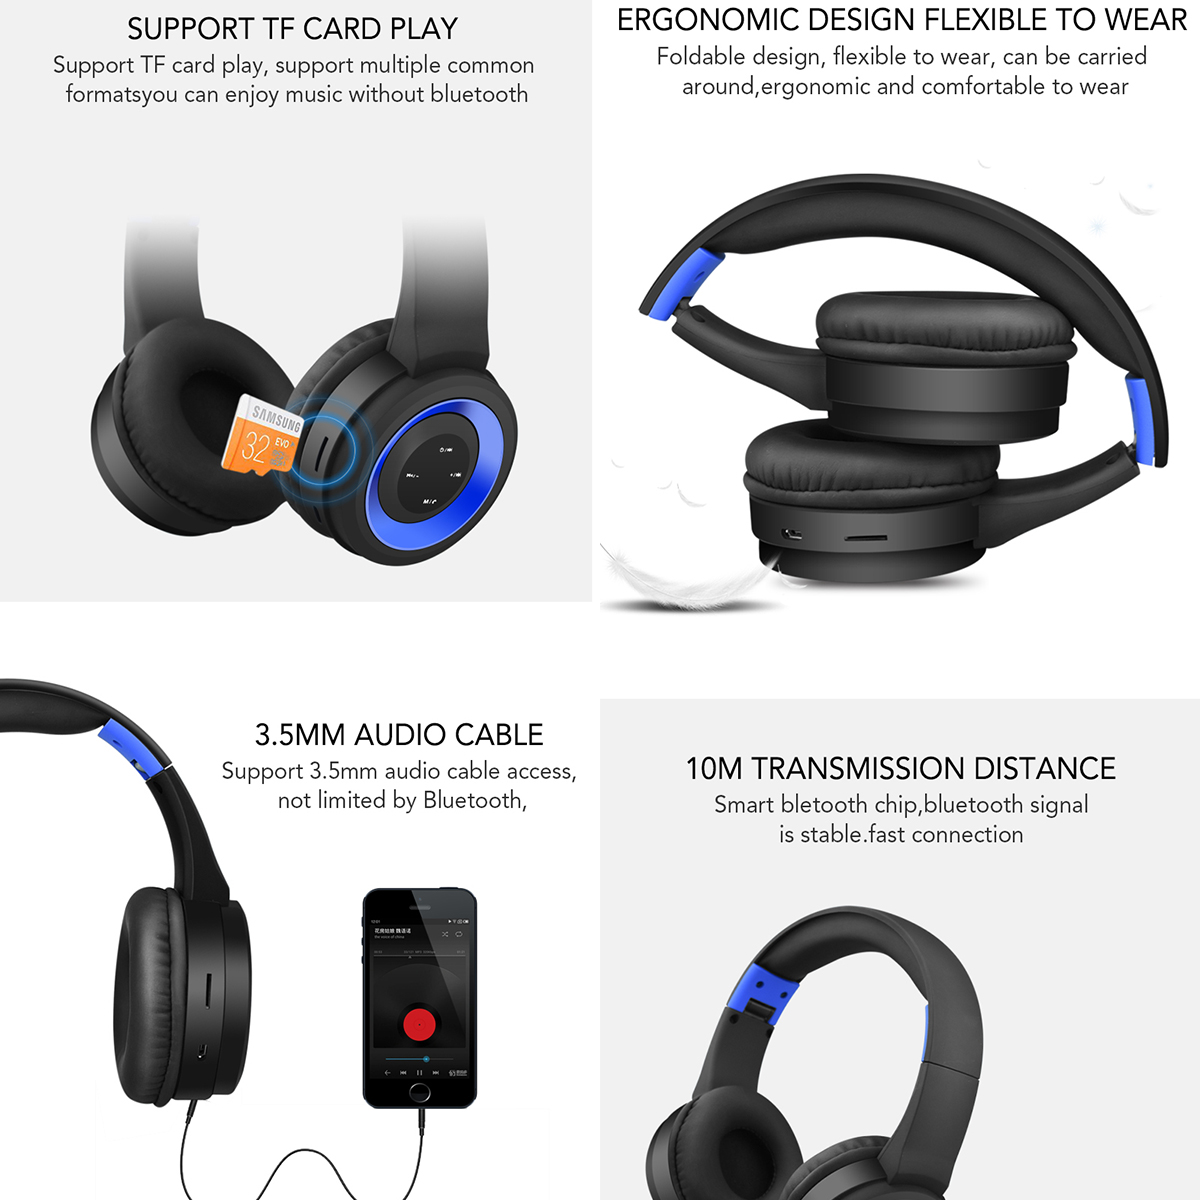 TR905 Wireless Headphones Noise Cancelling BT Headband Sport Game Headset Foldable Stereo Earphones With Mic For Phone Pc Laptop